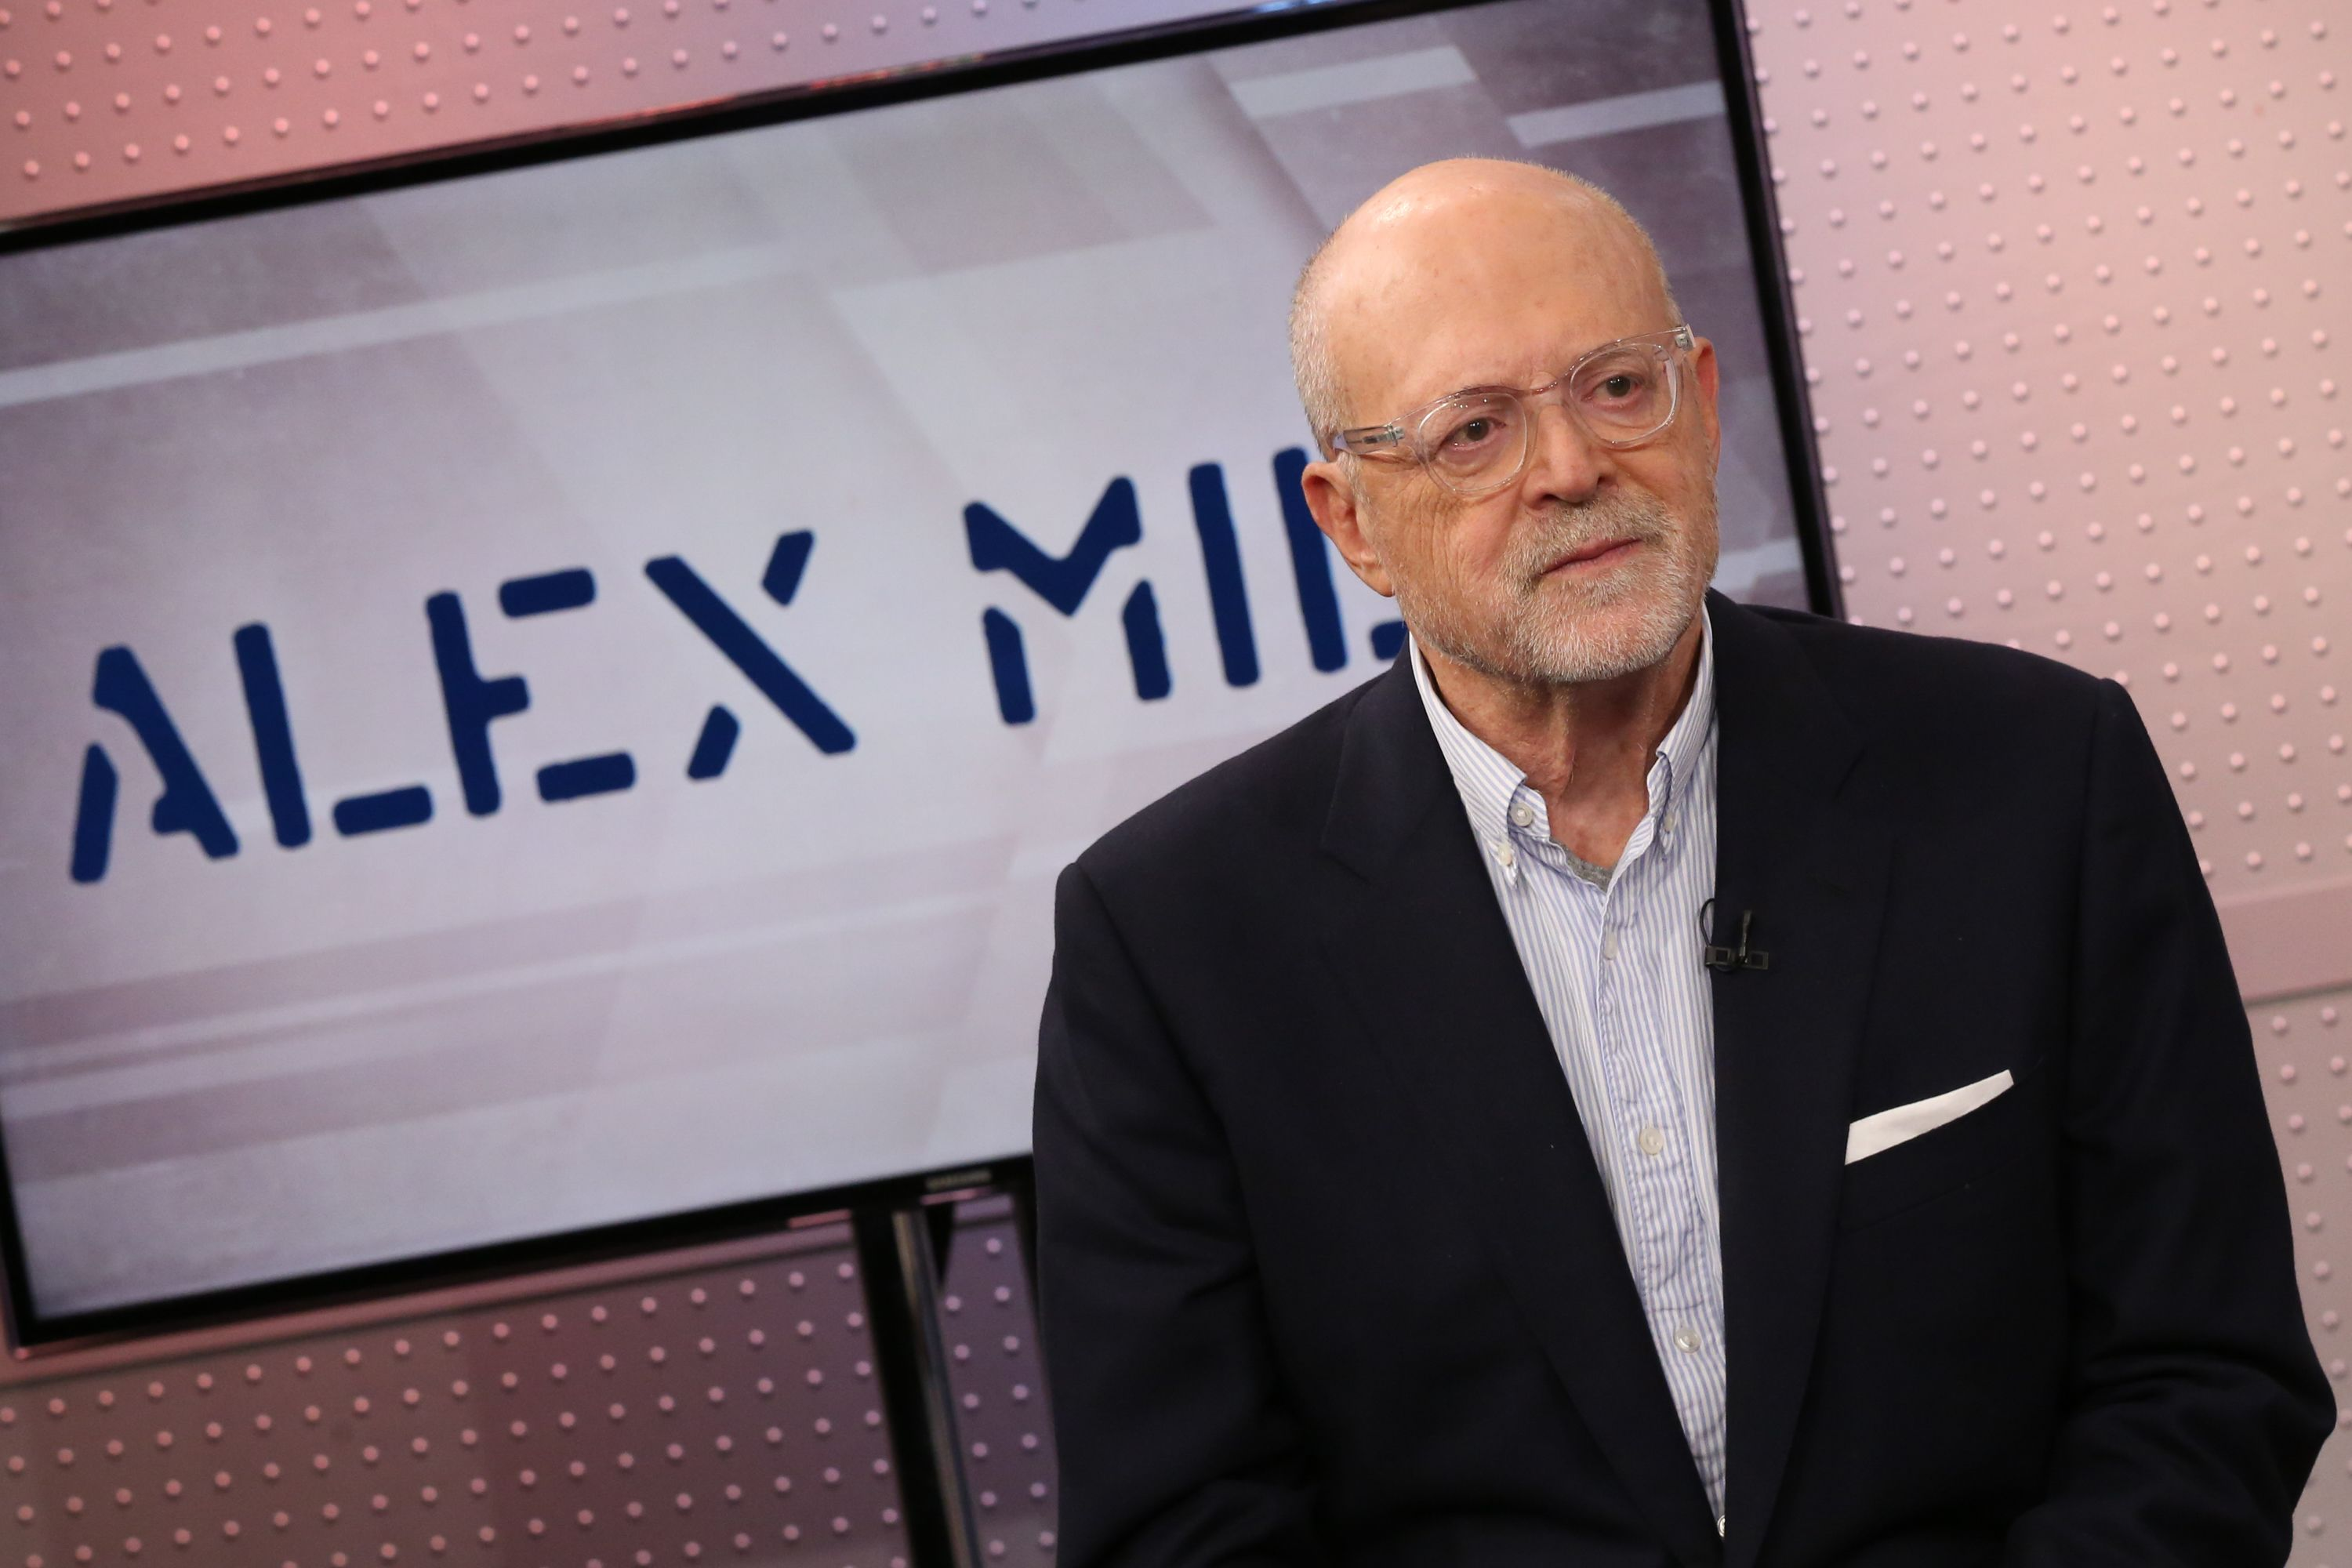 Retail legend Mickey Drexler on how clothing companies can succeed in today's environment